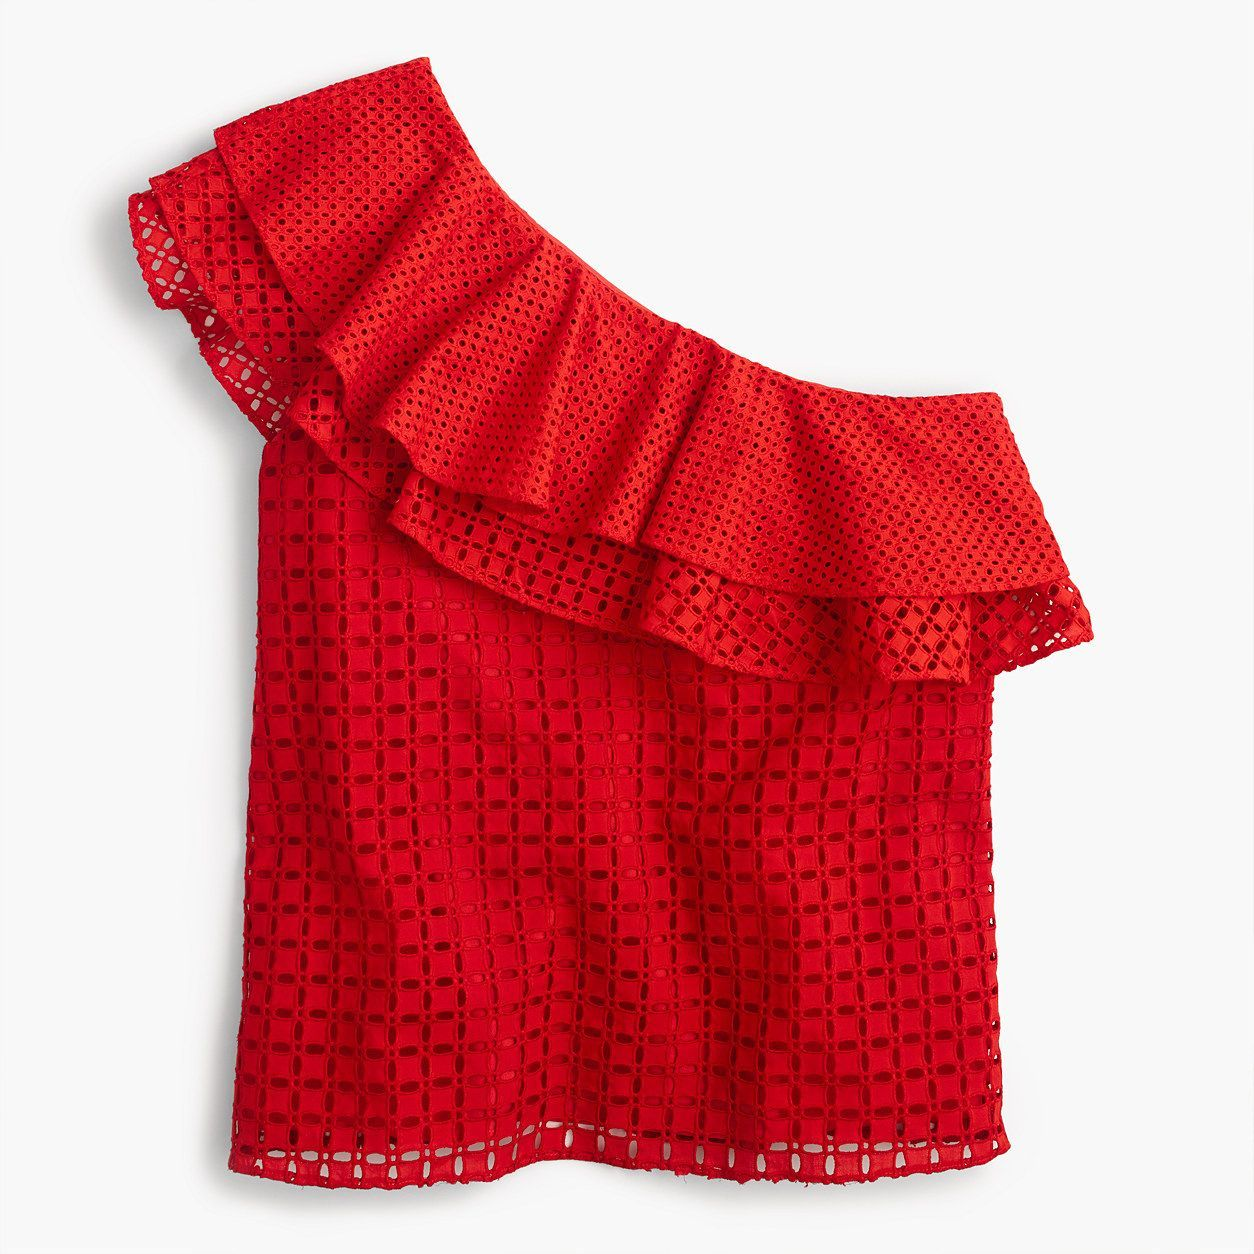 4482810f164 J.Crew Womens One-Shoulder Ruffle Top In Eyelet (Size 6)   Clothes ...